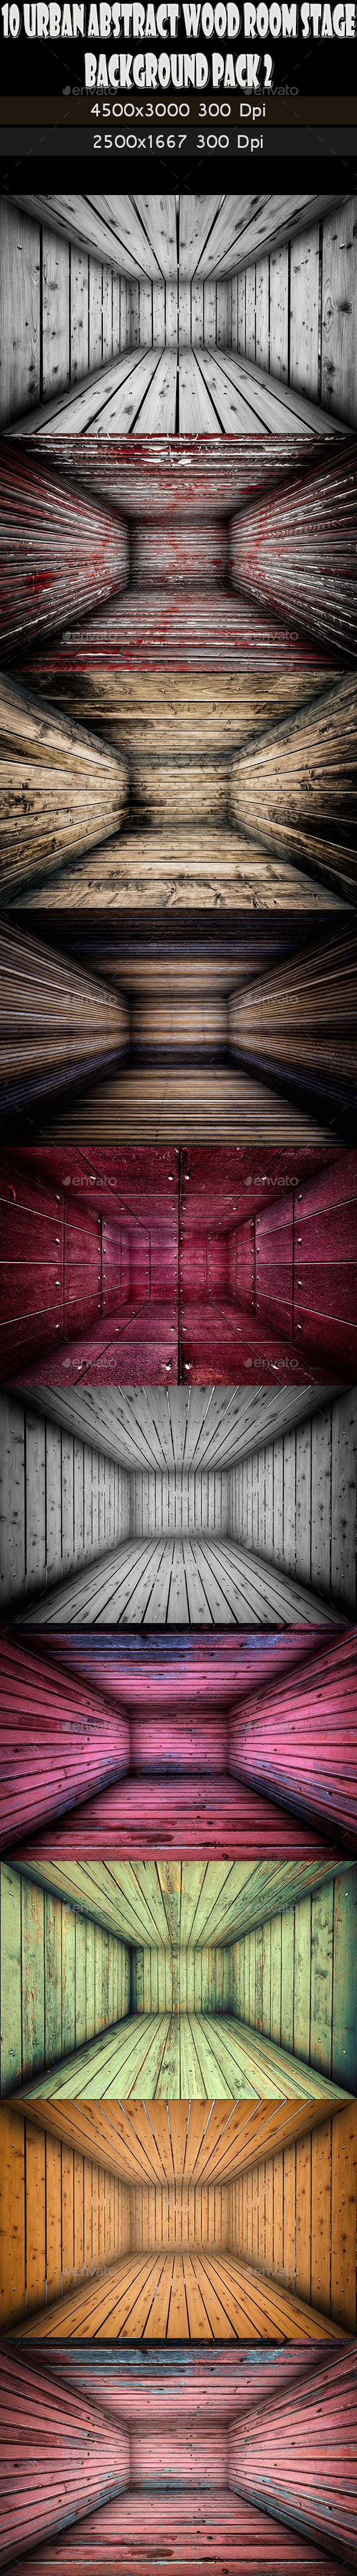 GraphicRiver 10 Abstract Wooden Interior Walls Stage 2 11765628